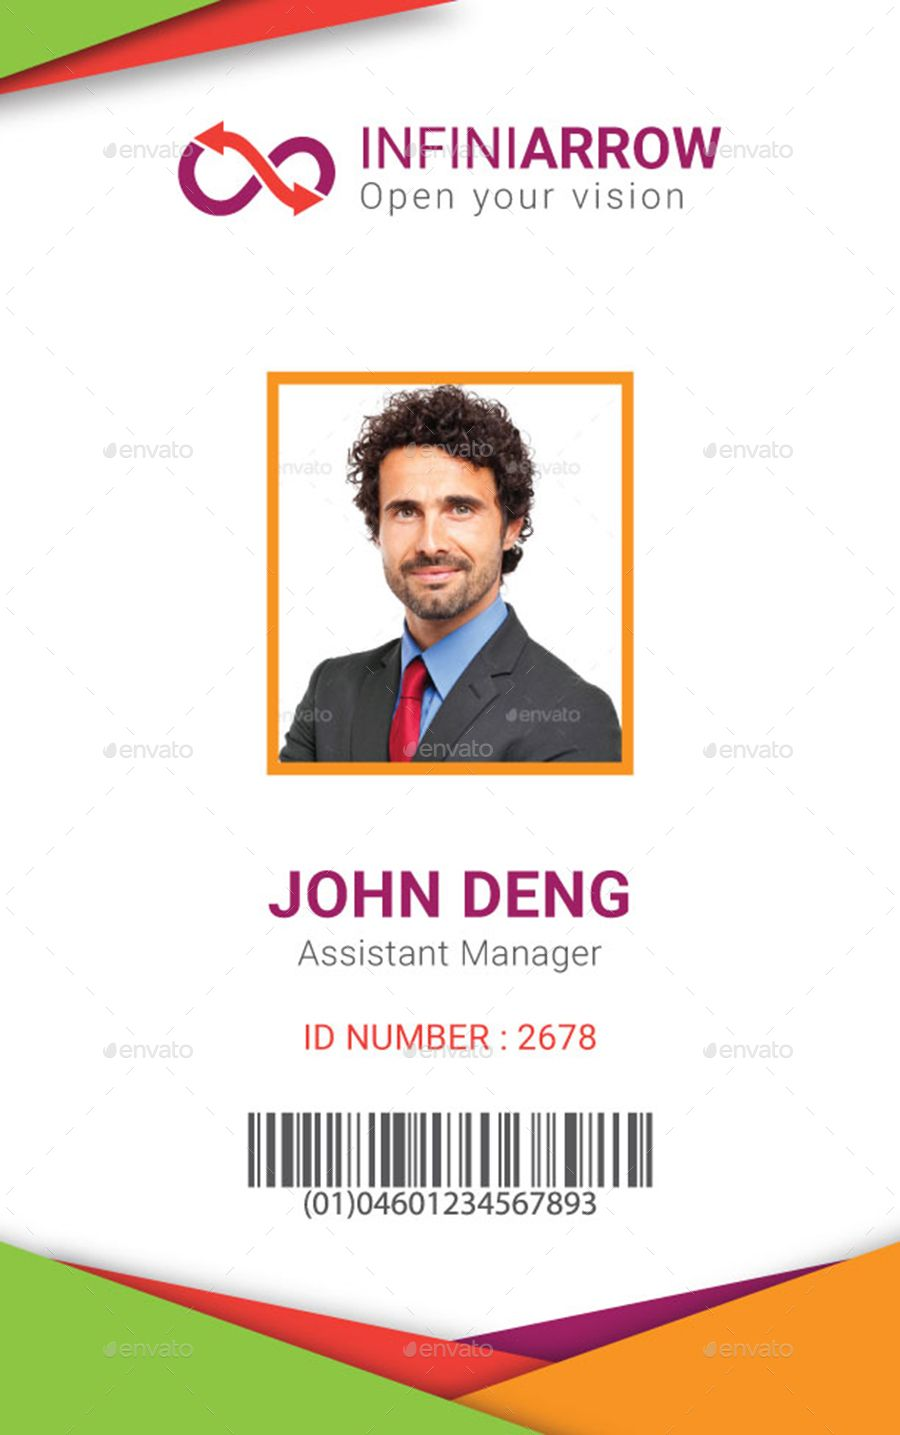 Employee Id Card Template Free Download Elegant Abstract Id Card Template With Flat Design Vector Employee Id Card Vector Business Card Id Card Template